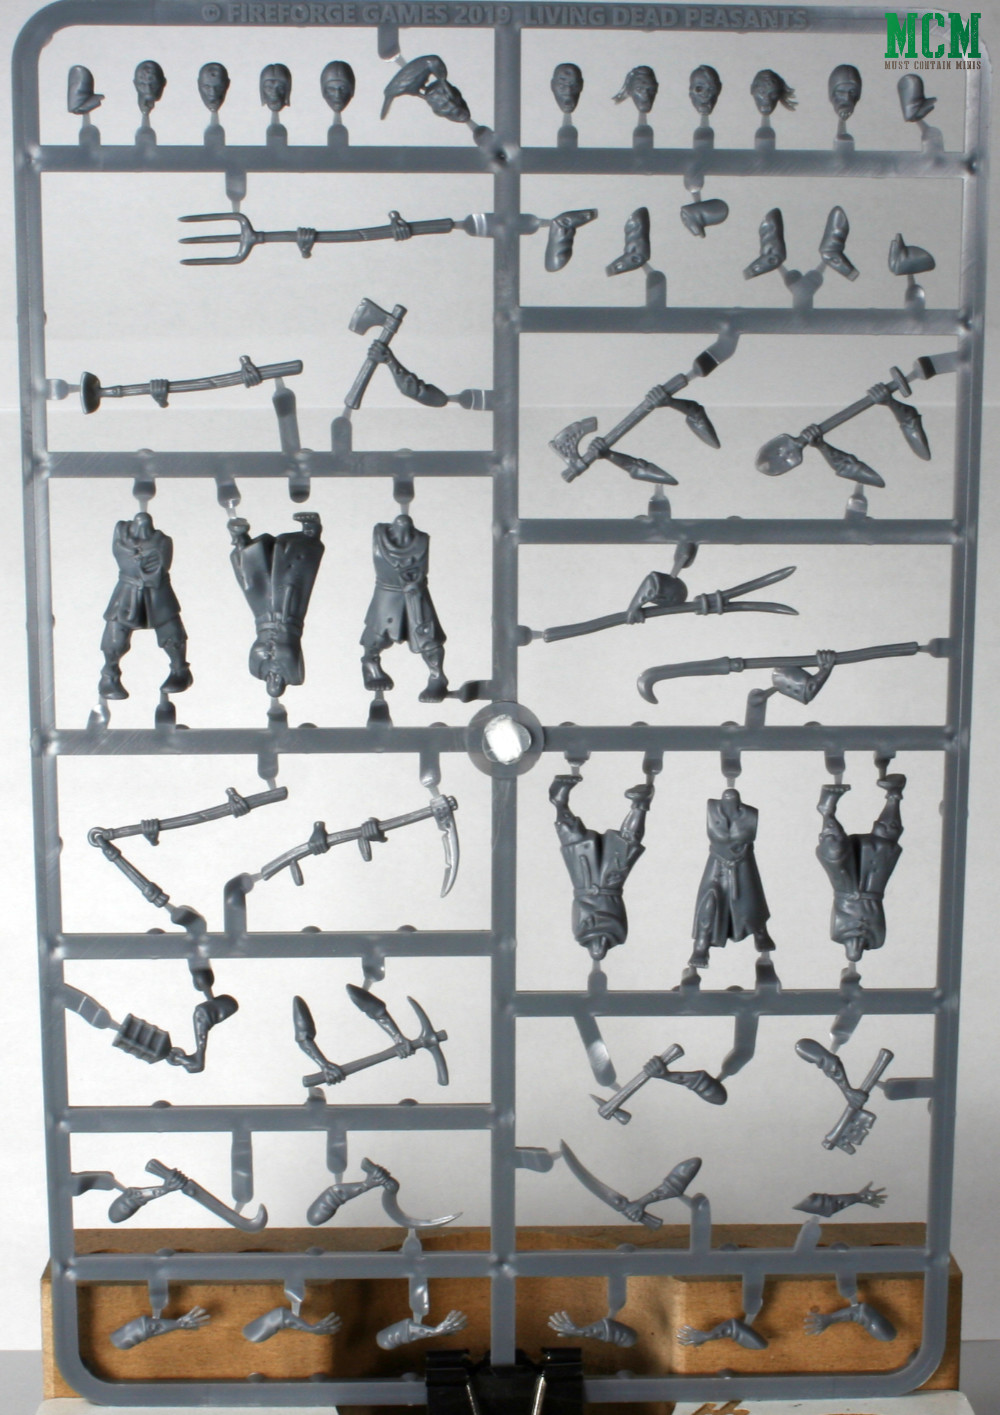 Forgotten Worlds Living Dead Image of the Sprue - Fireforge Games